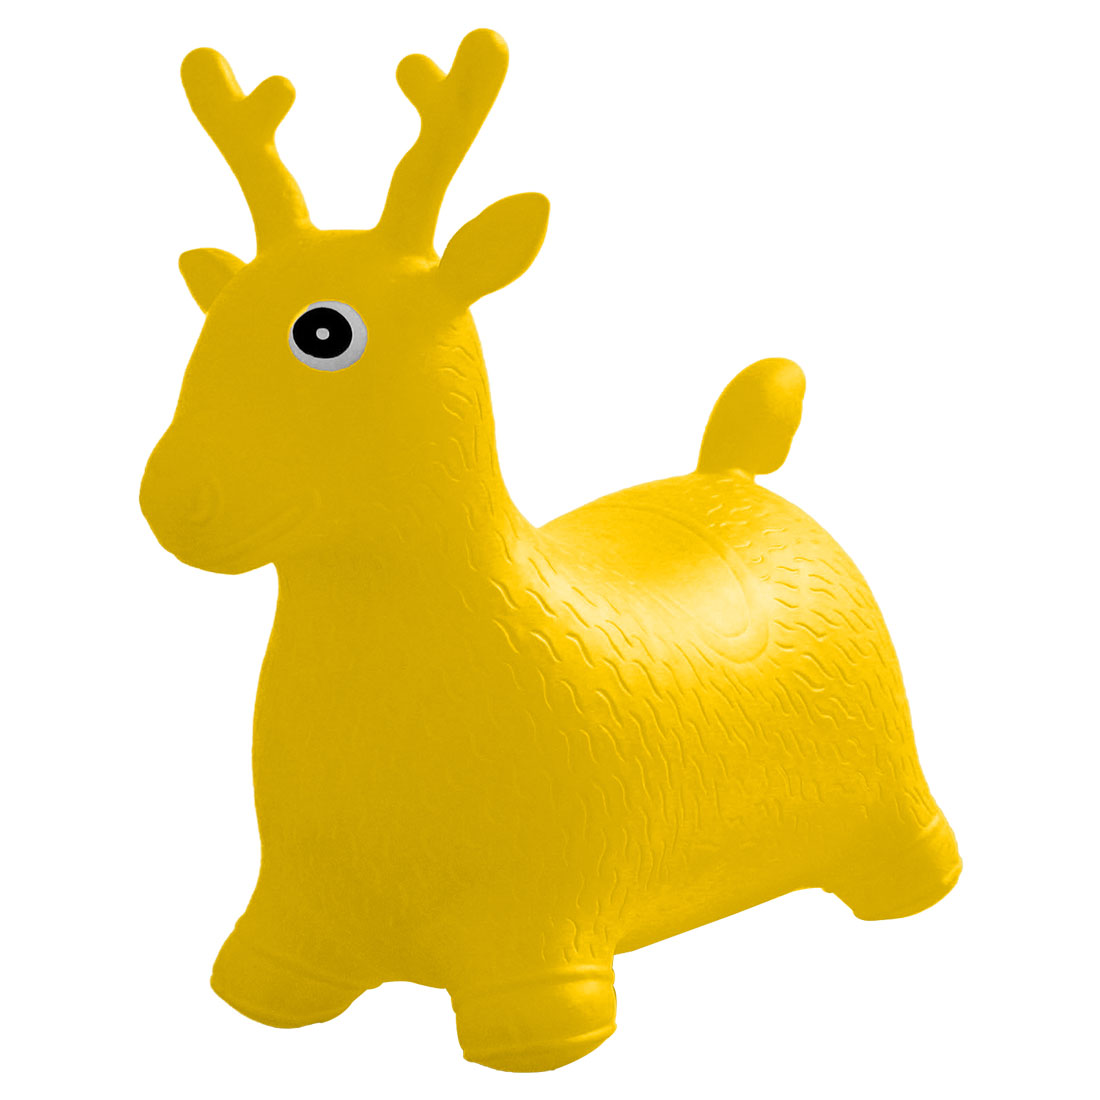 Toy Inflatable Playing Reindeer Baby Stool Yellow for Children